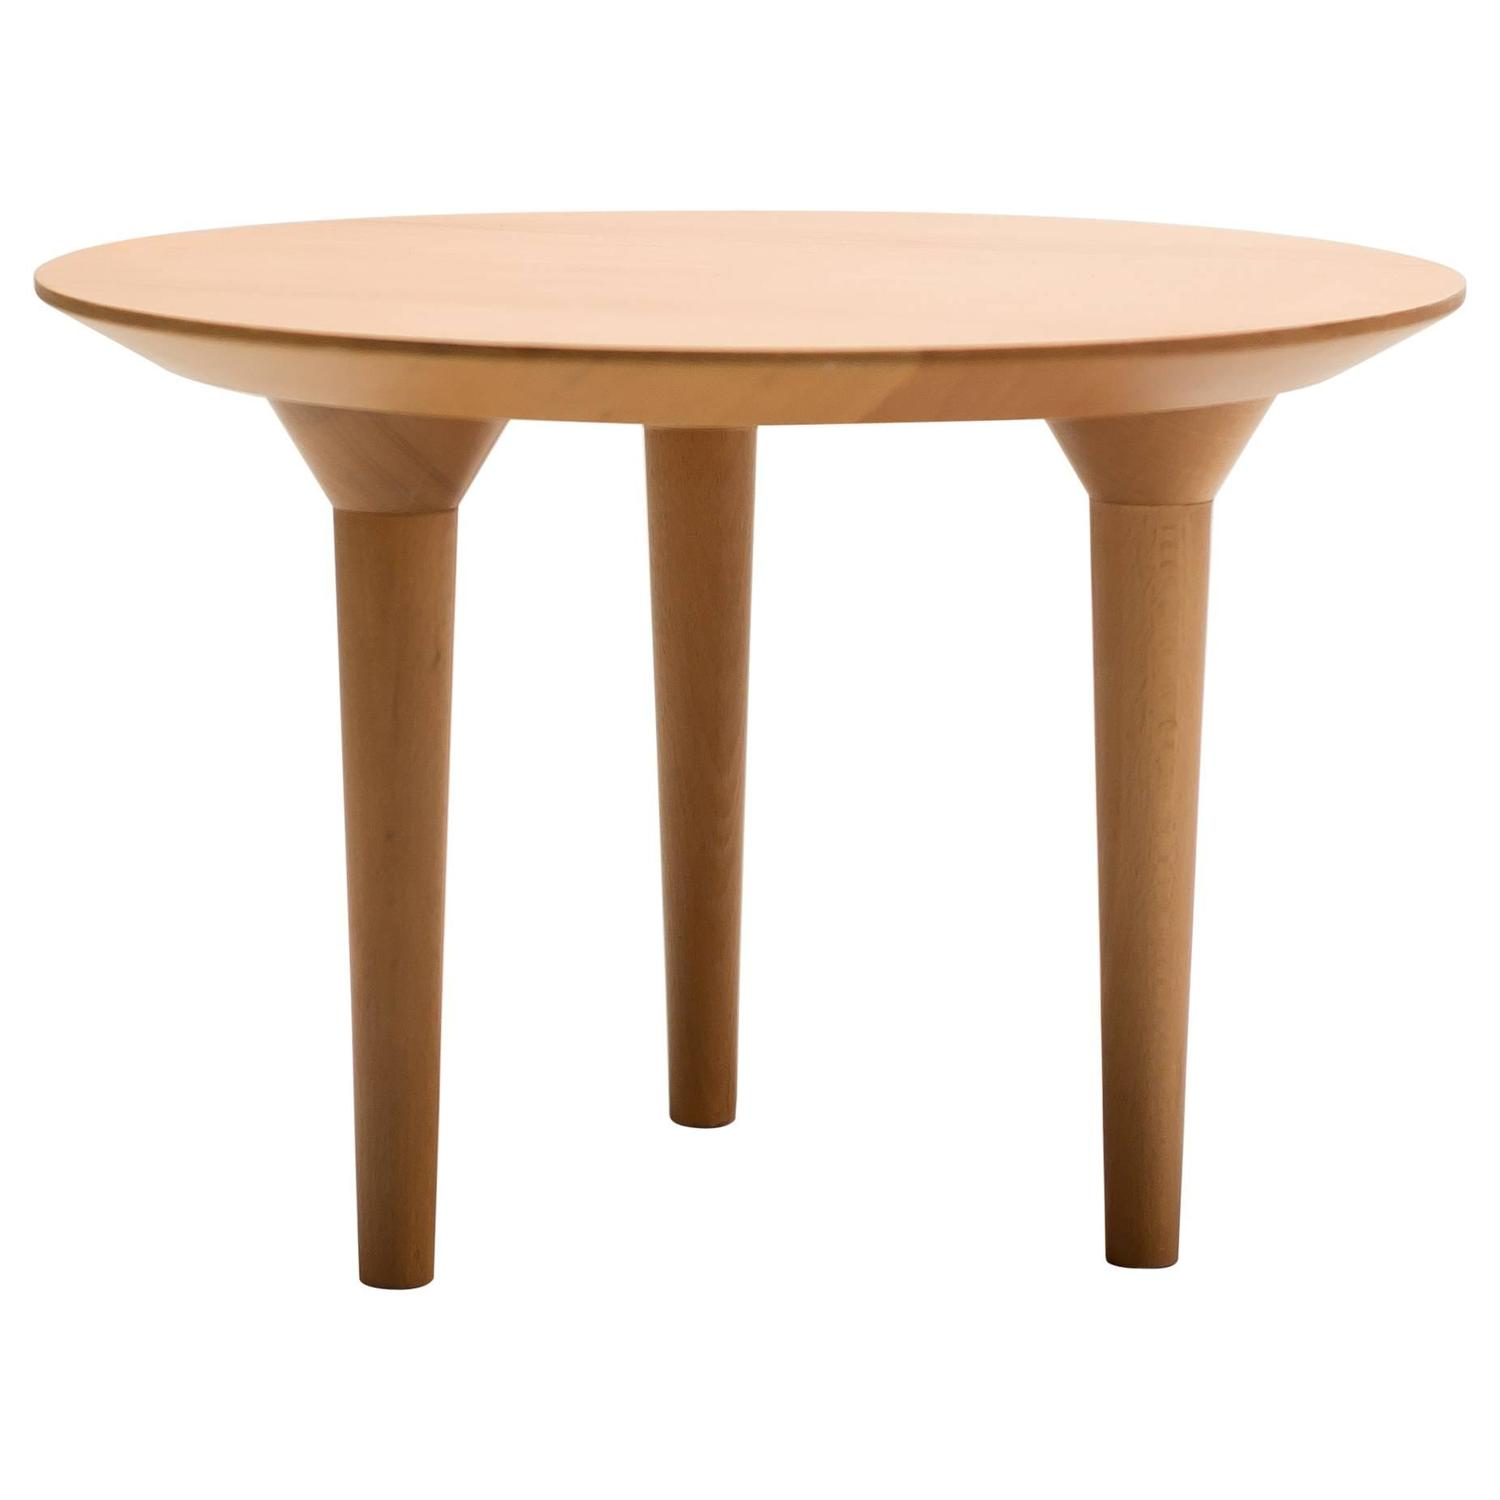 Parco Round Coffee Table by Lluis Clotet for Driade For Sale at